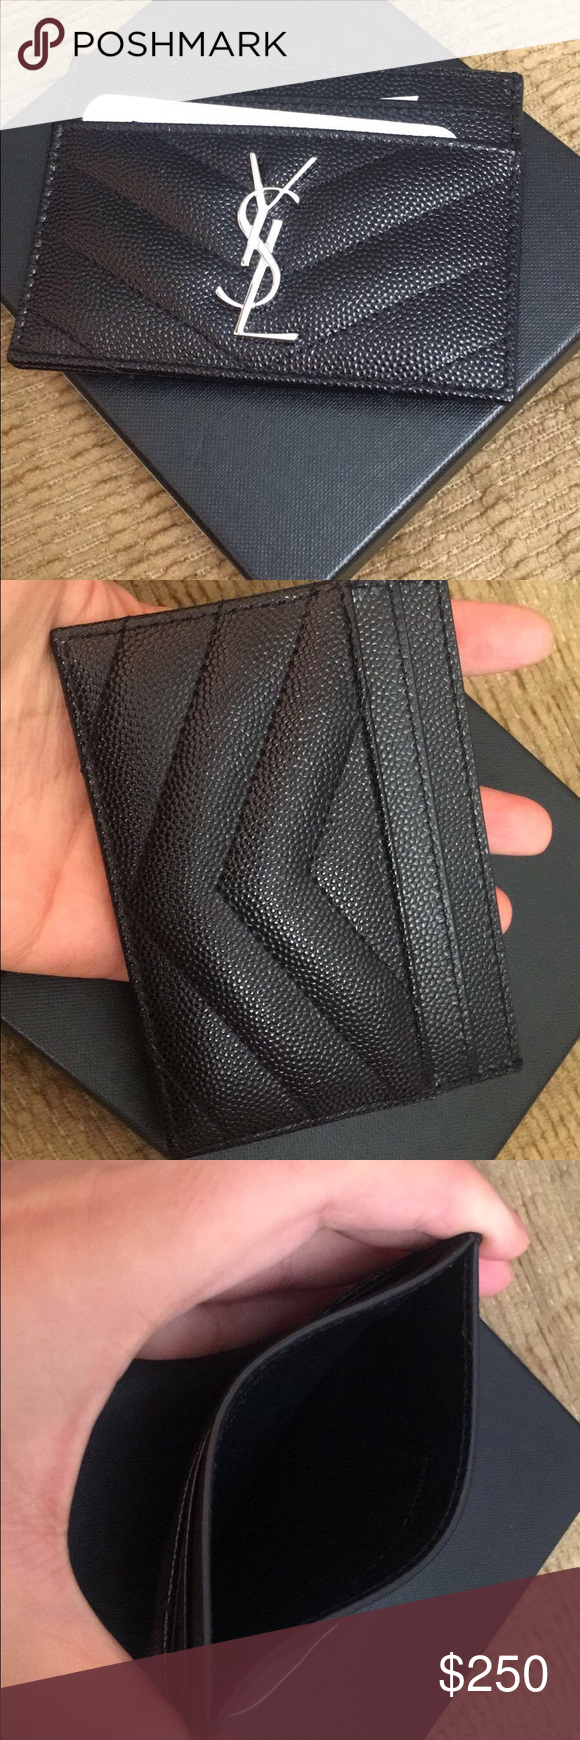 c79431a91ef Ysl card holder Authentic YSL card holder brand new come with box Yves  Saint Laurent Accessories Key & Card Holders